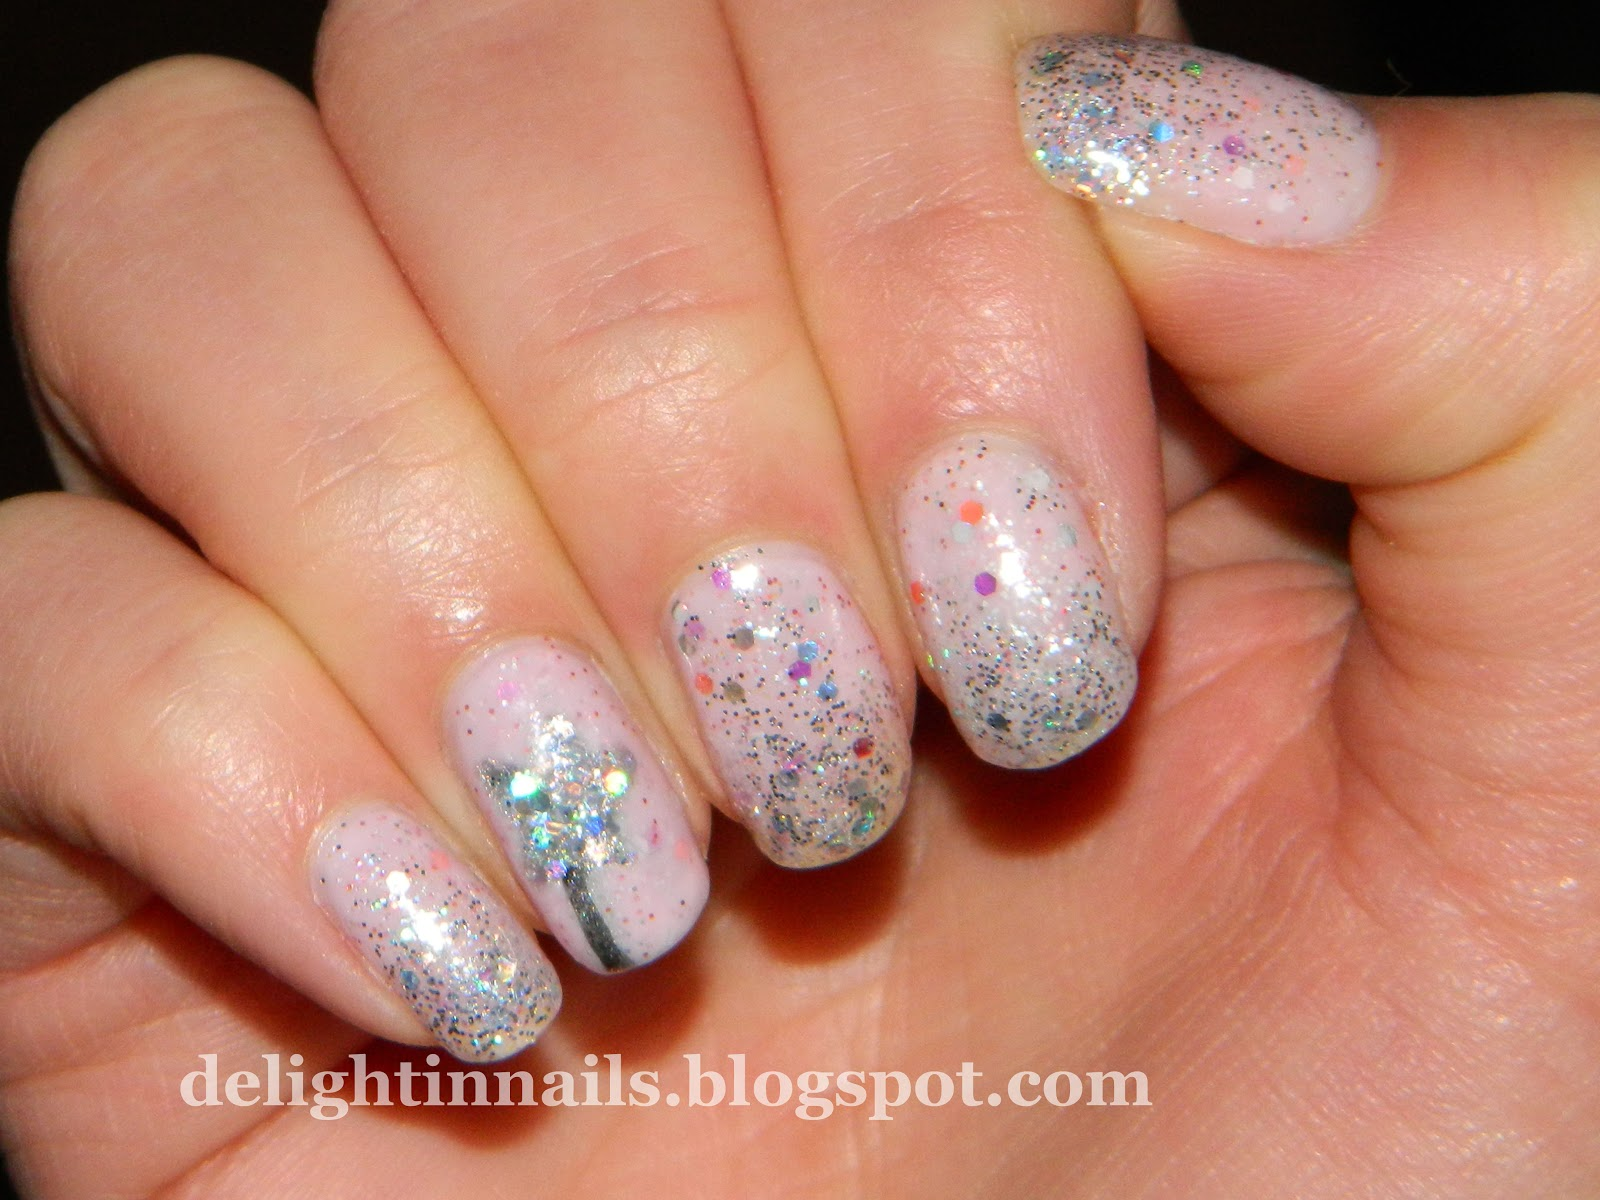 Delight In Nails Nail Aween Nail Art Challenge Witch Nail Art